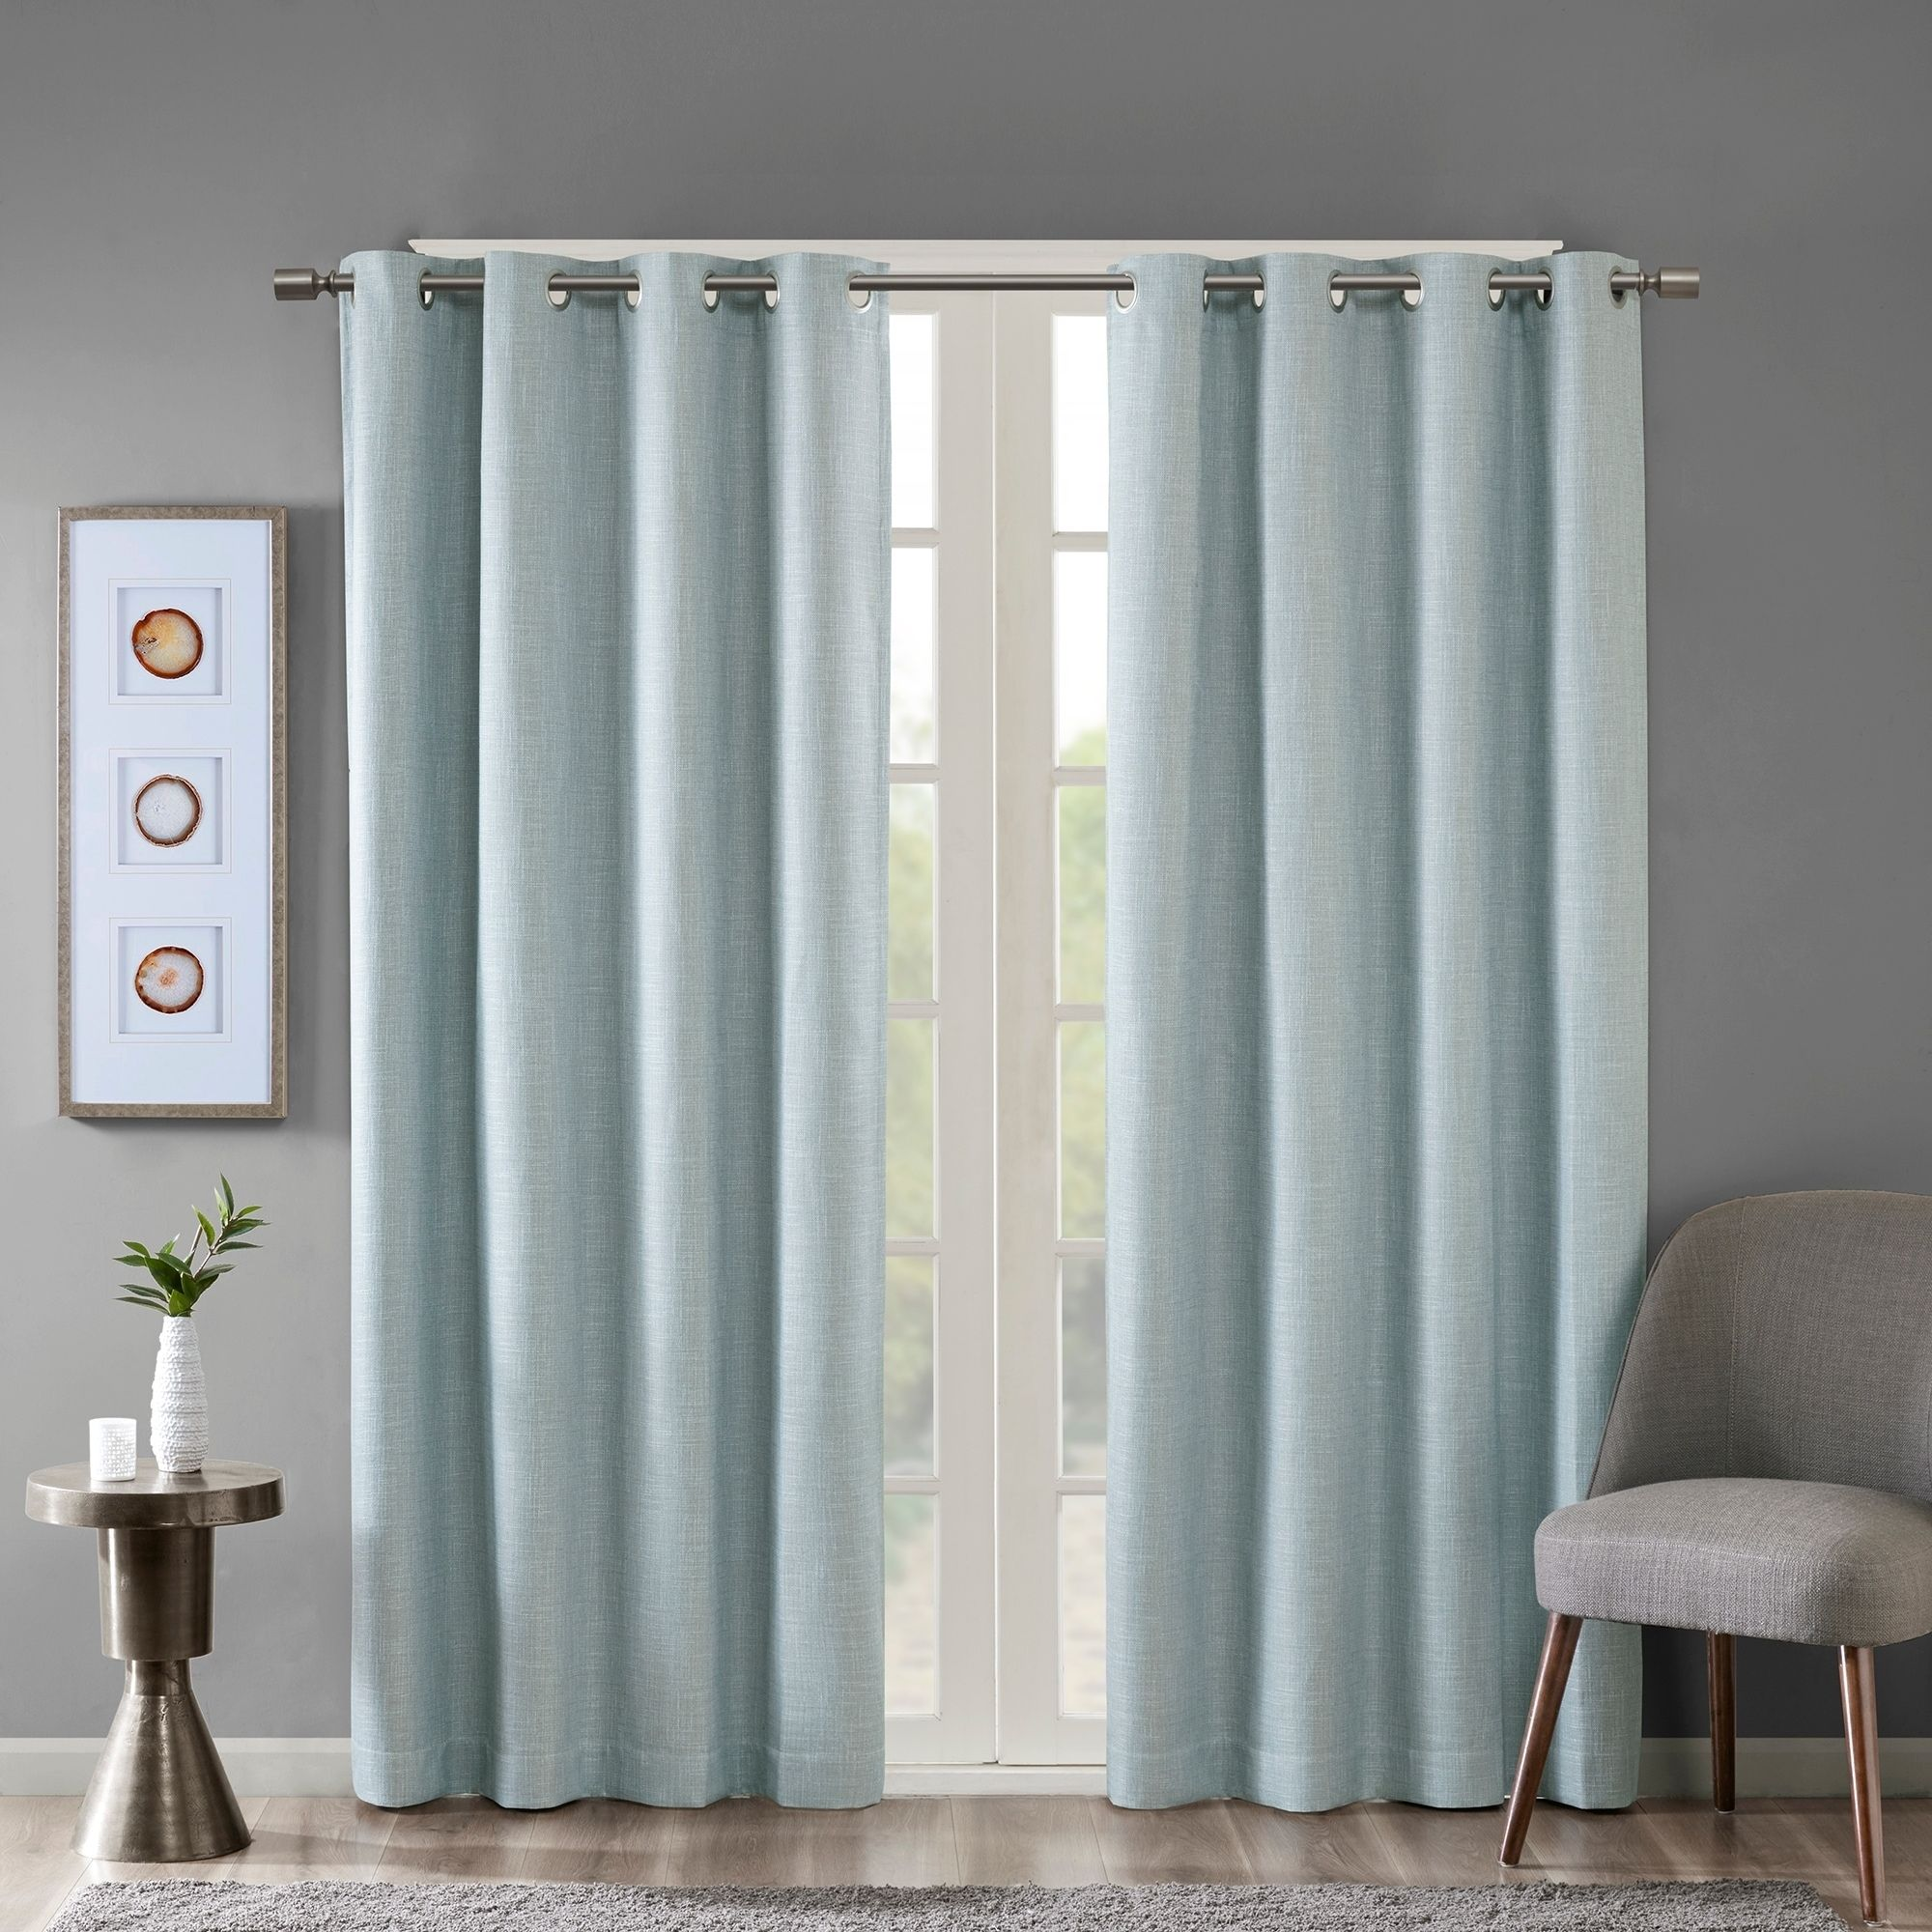 Sunsmart Arlie Printed Heathered Blackout Single Window Curtain Panel 4 Color Option 50 W X 95 L Grey Gray